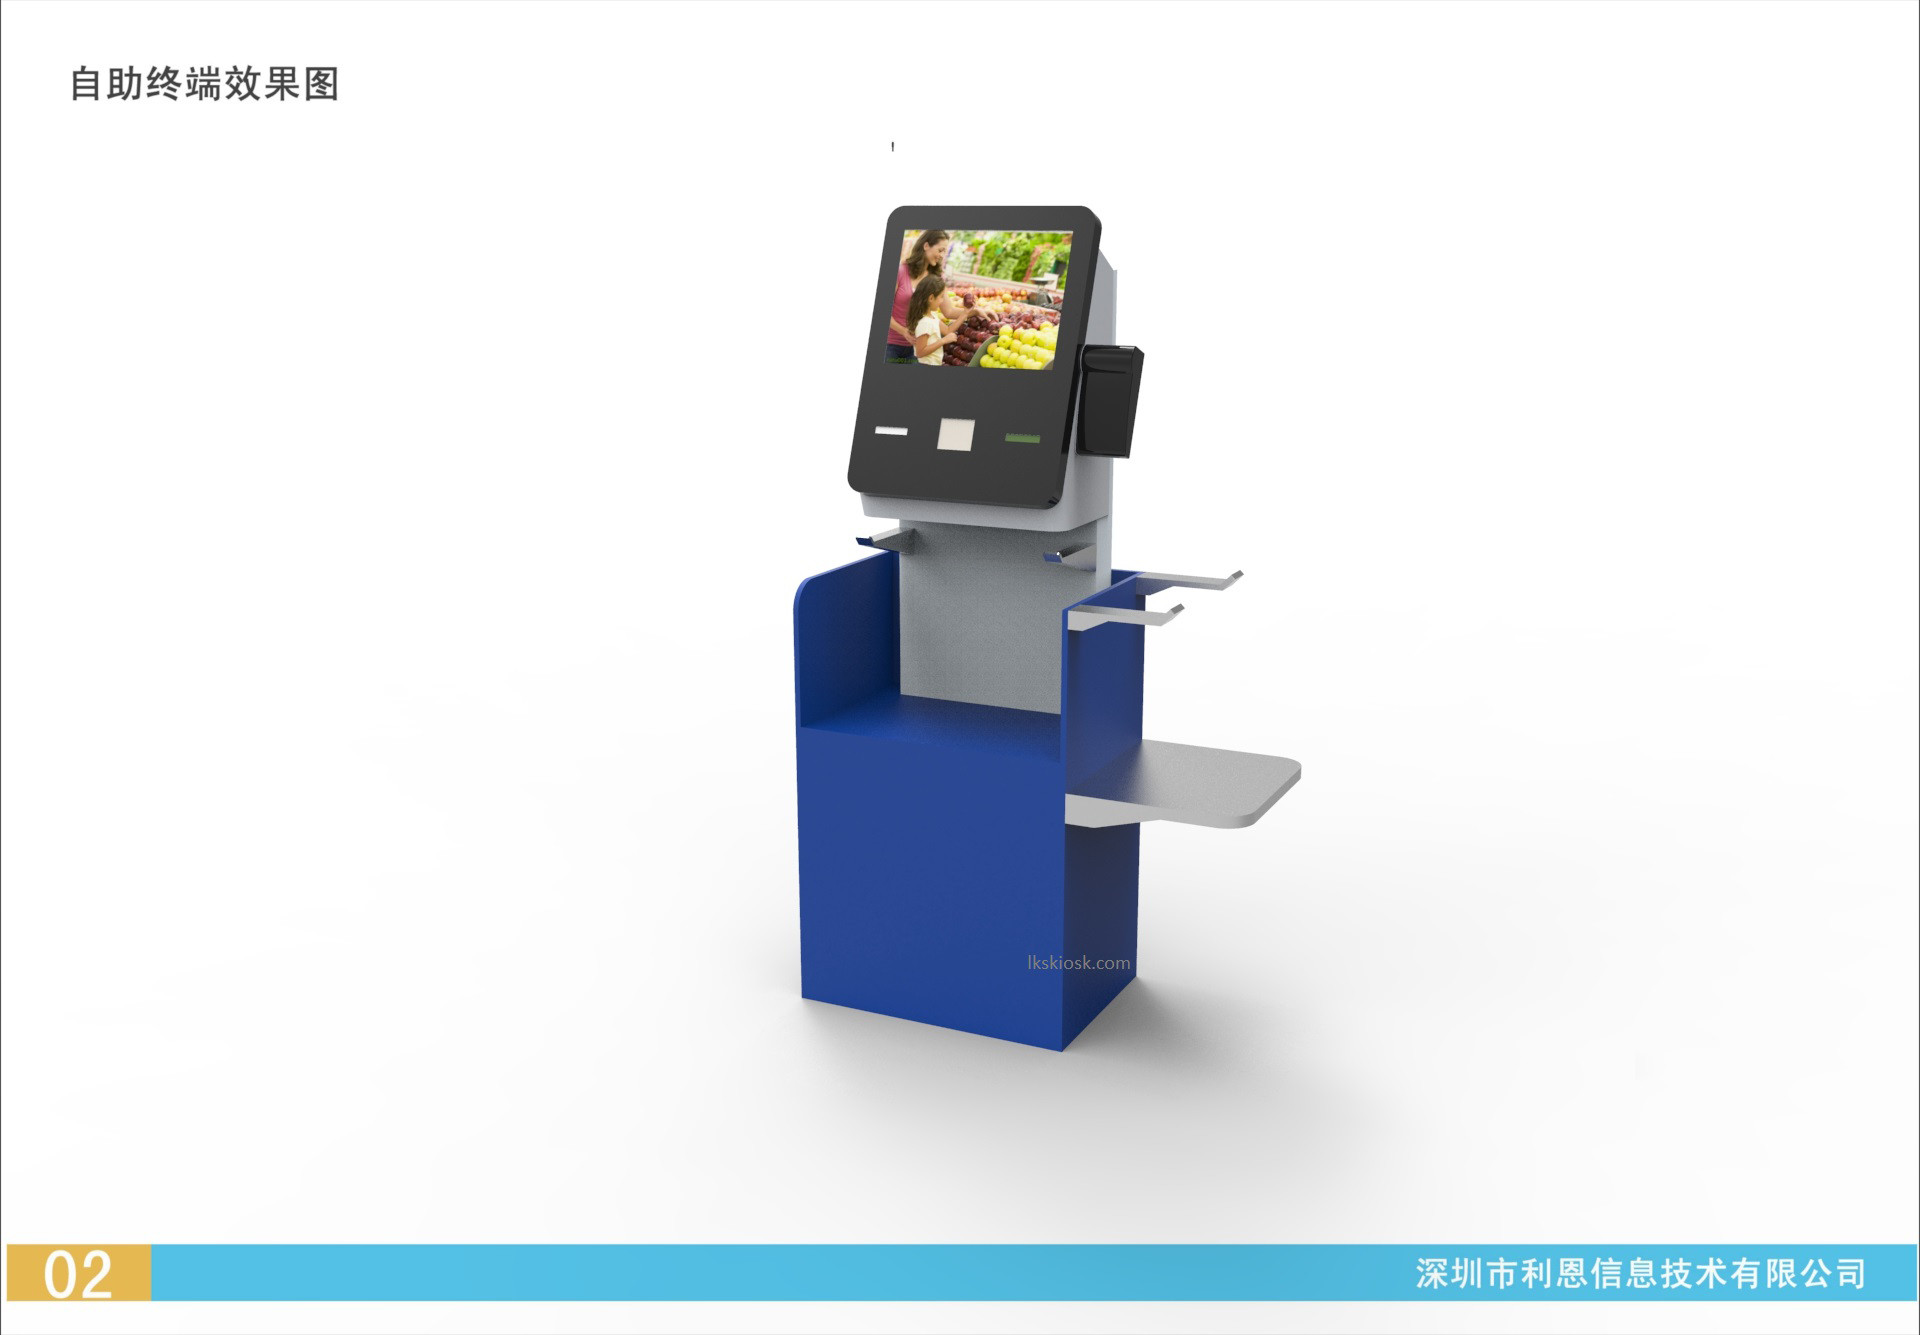 Cash / Bank Card Reader Self Checkout Kiosk Industrial PC For Hotel / Suppermarket